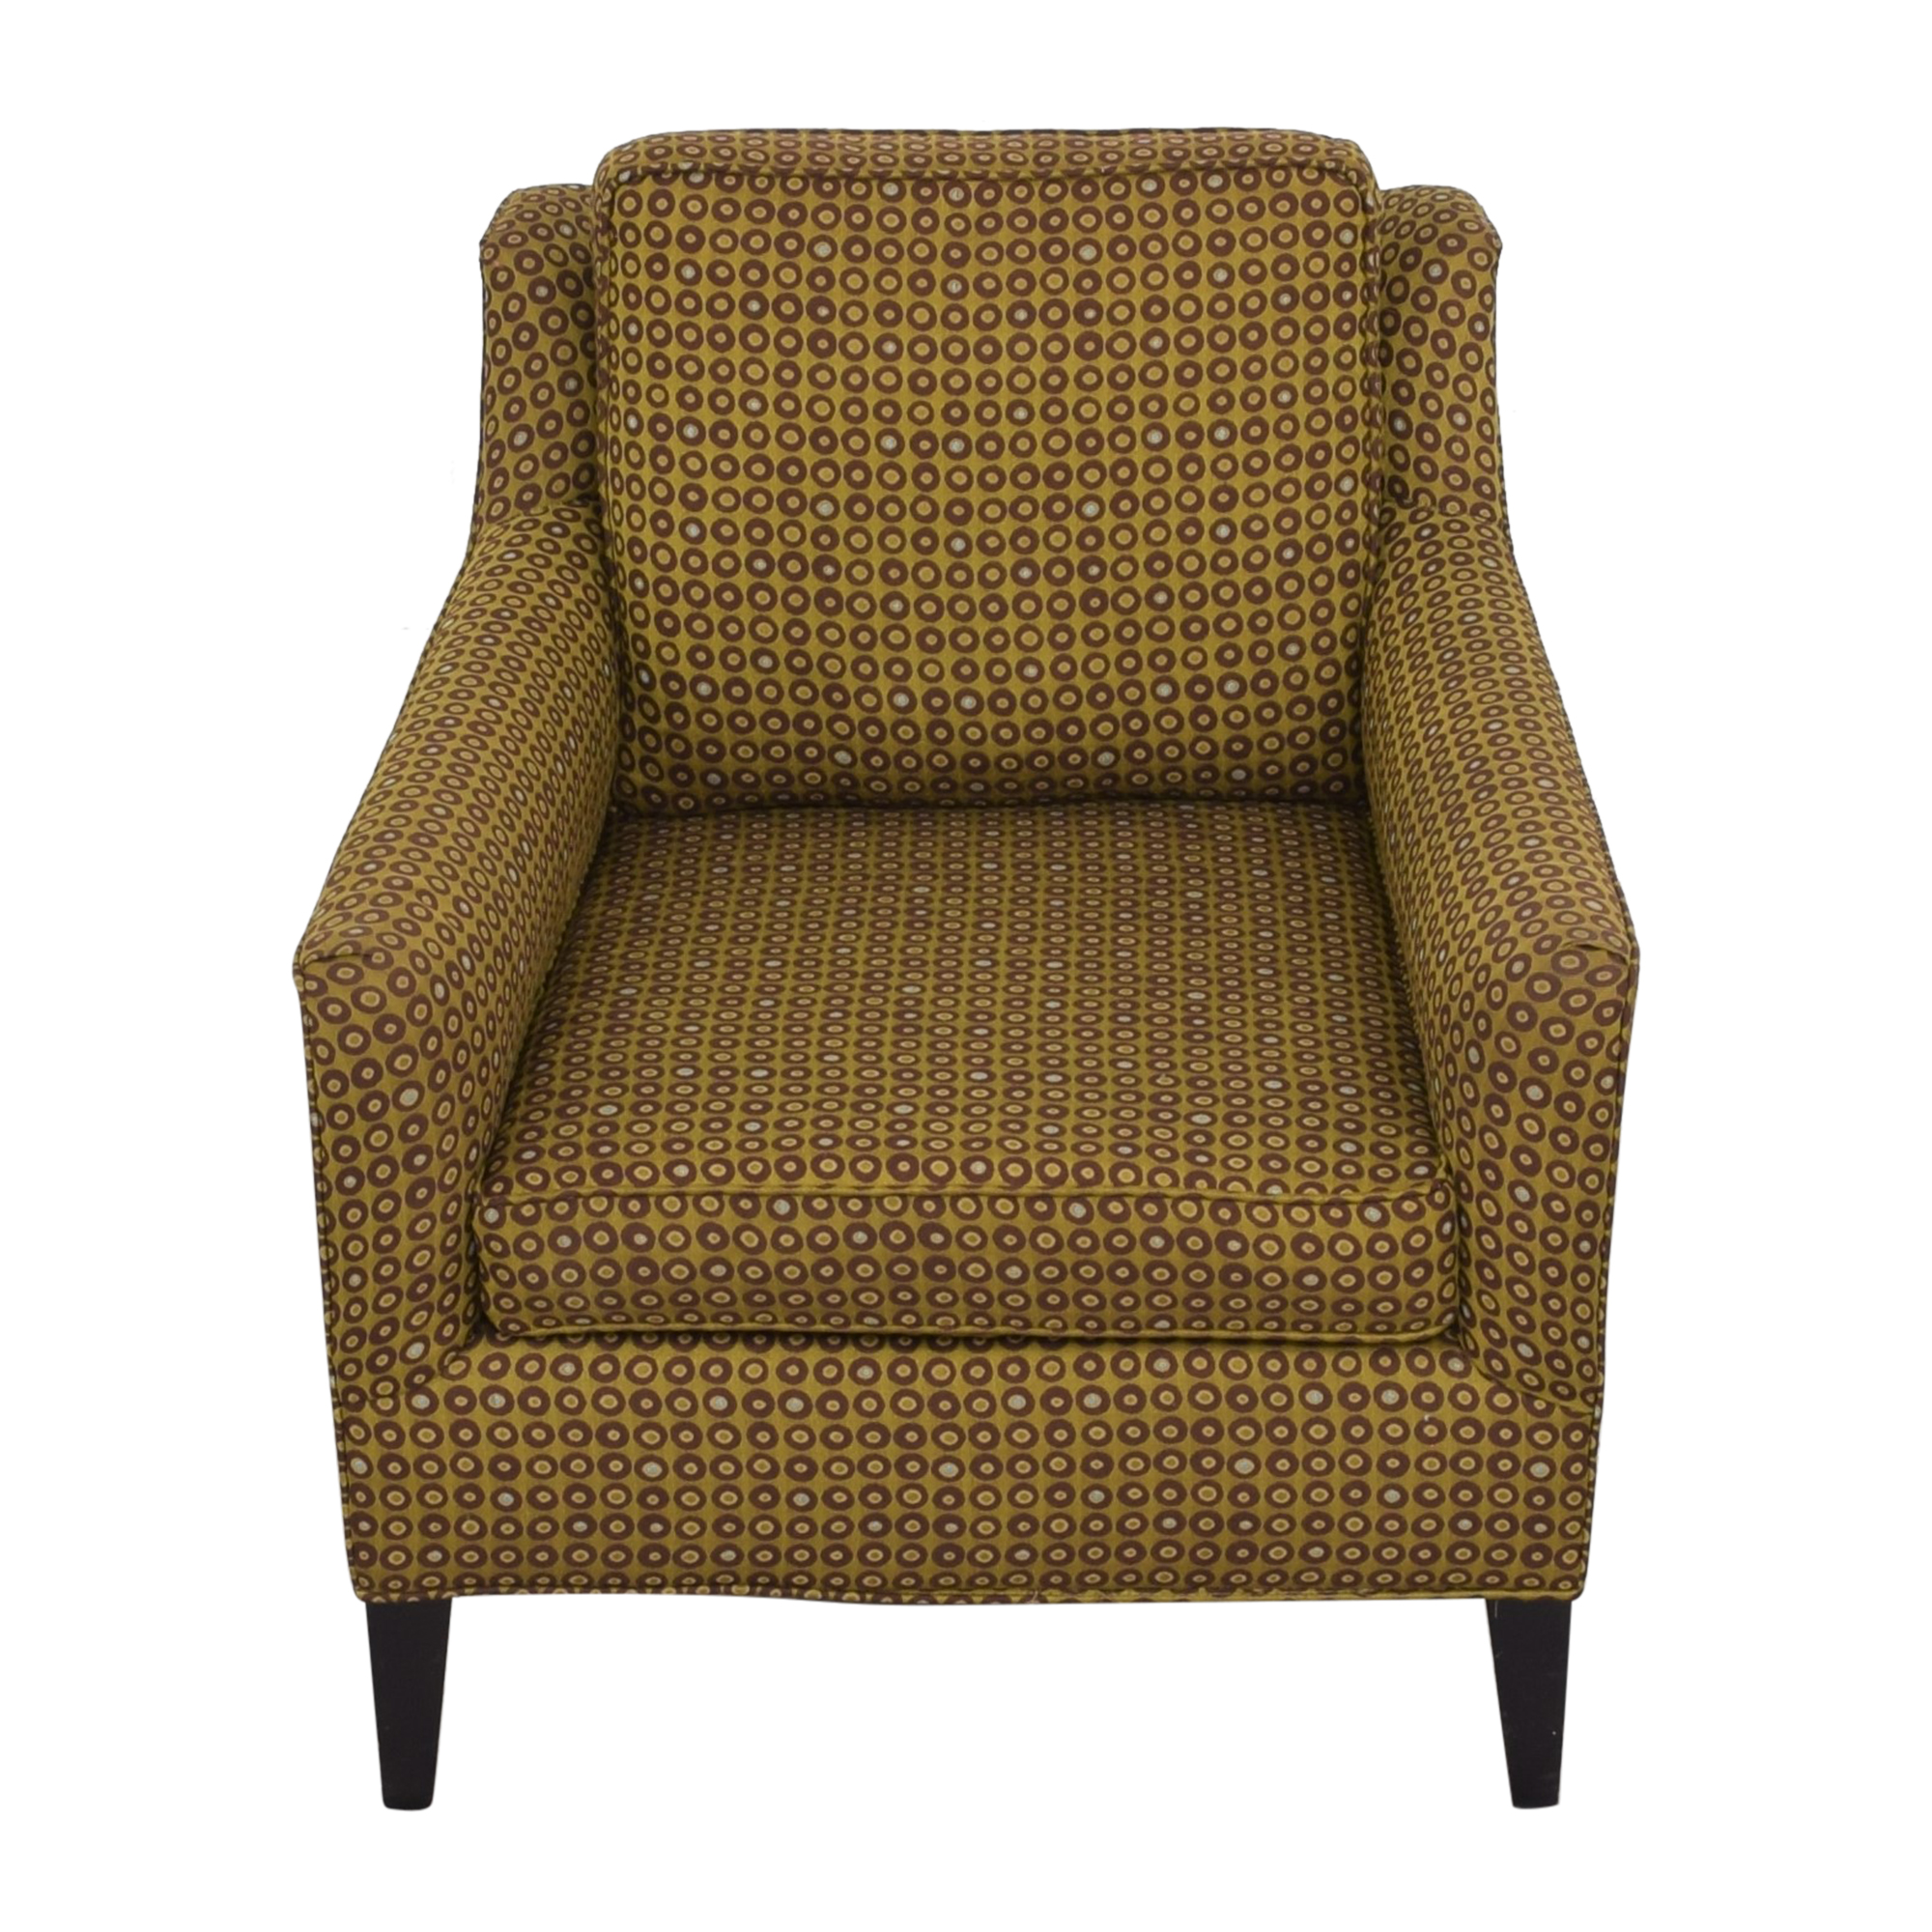 Mitchell Gold + Bob Williams Mitchell Gold + Bob Williams Club Chair for sale